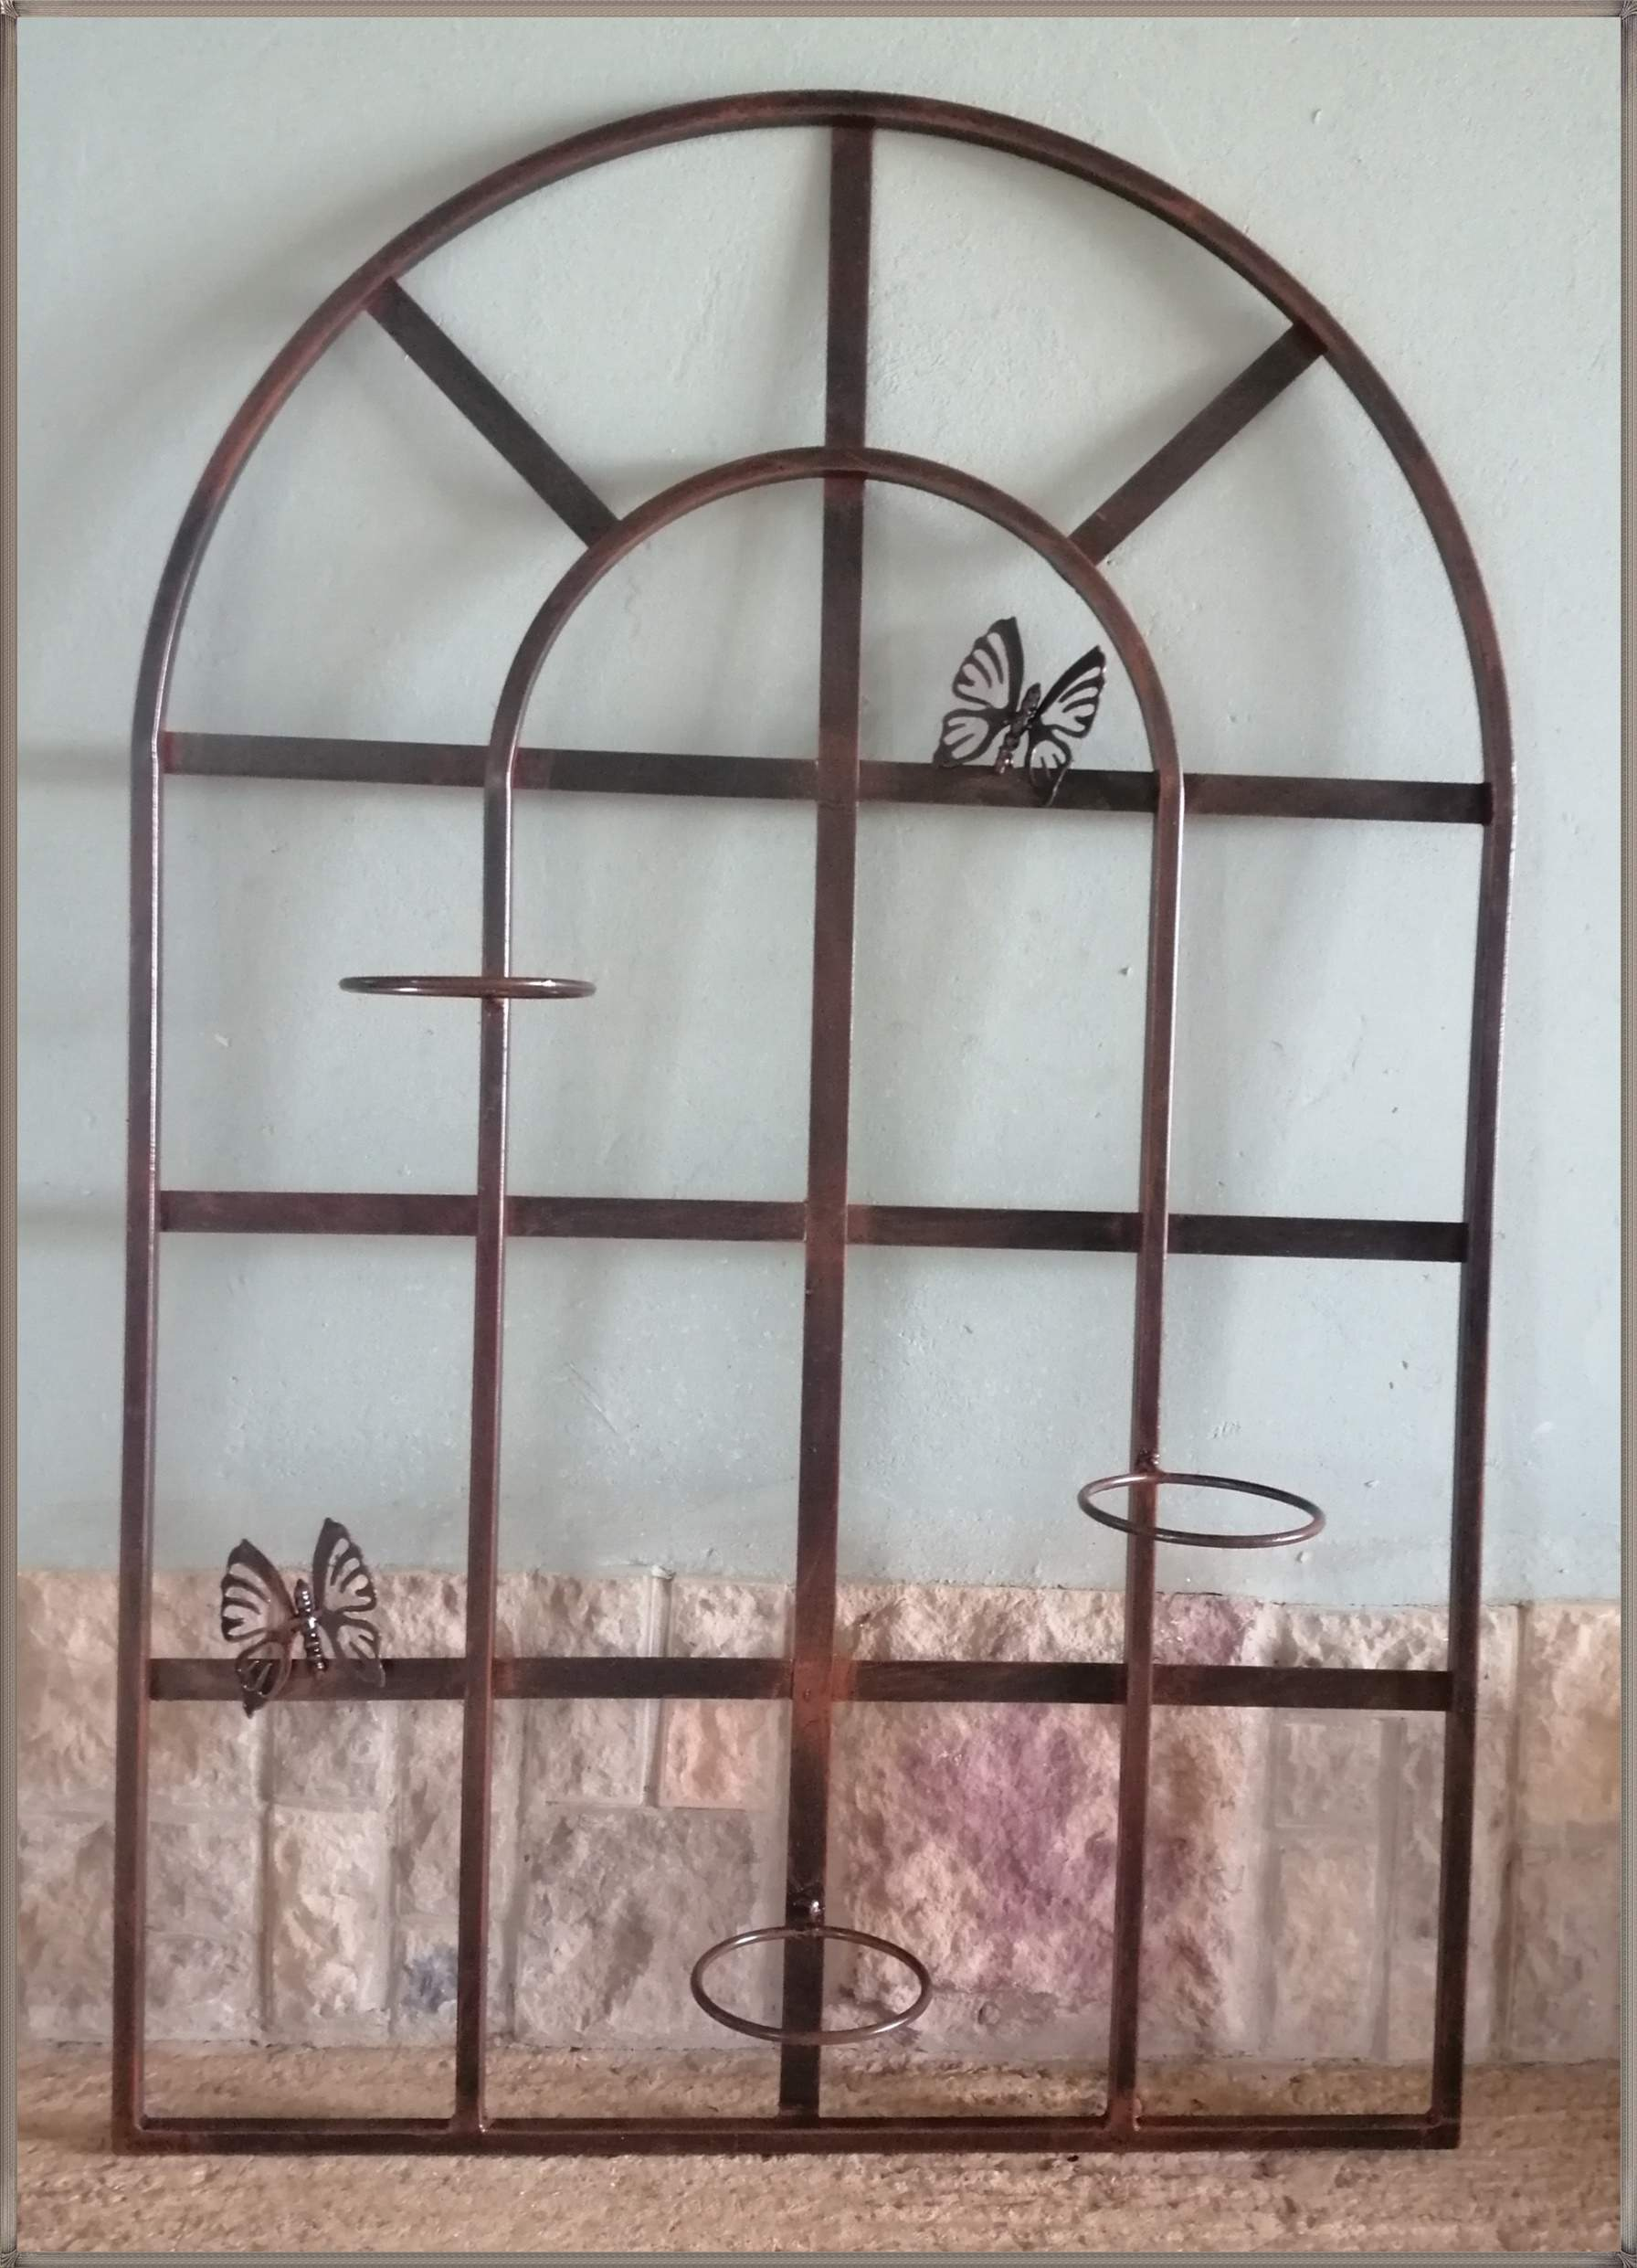 t28-windowframe-with-butterfly-and-pot-